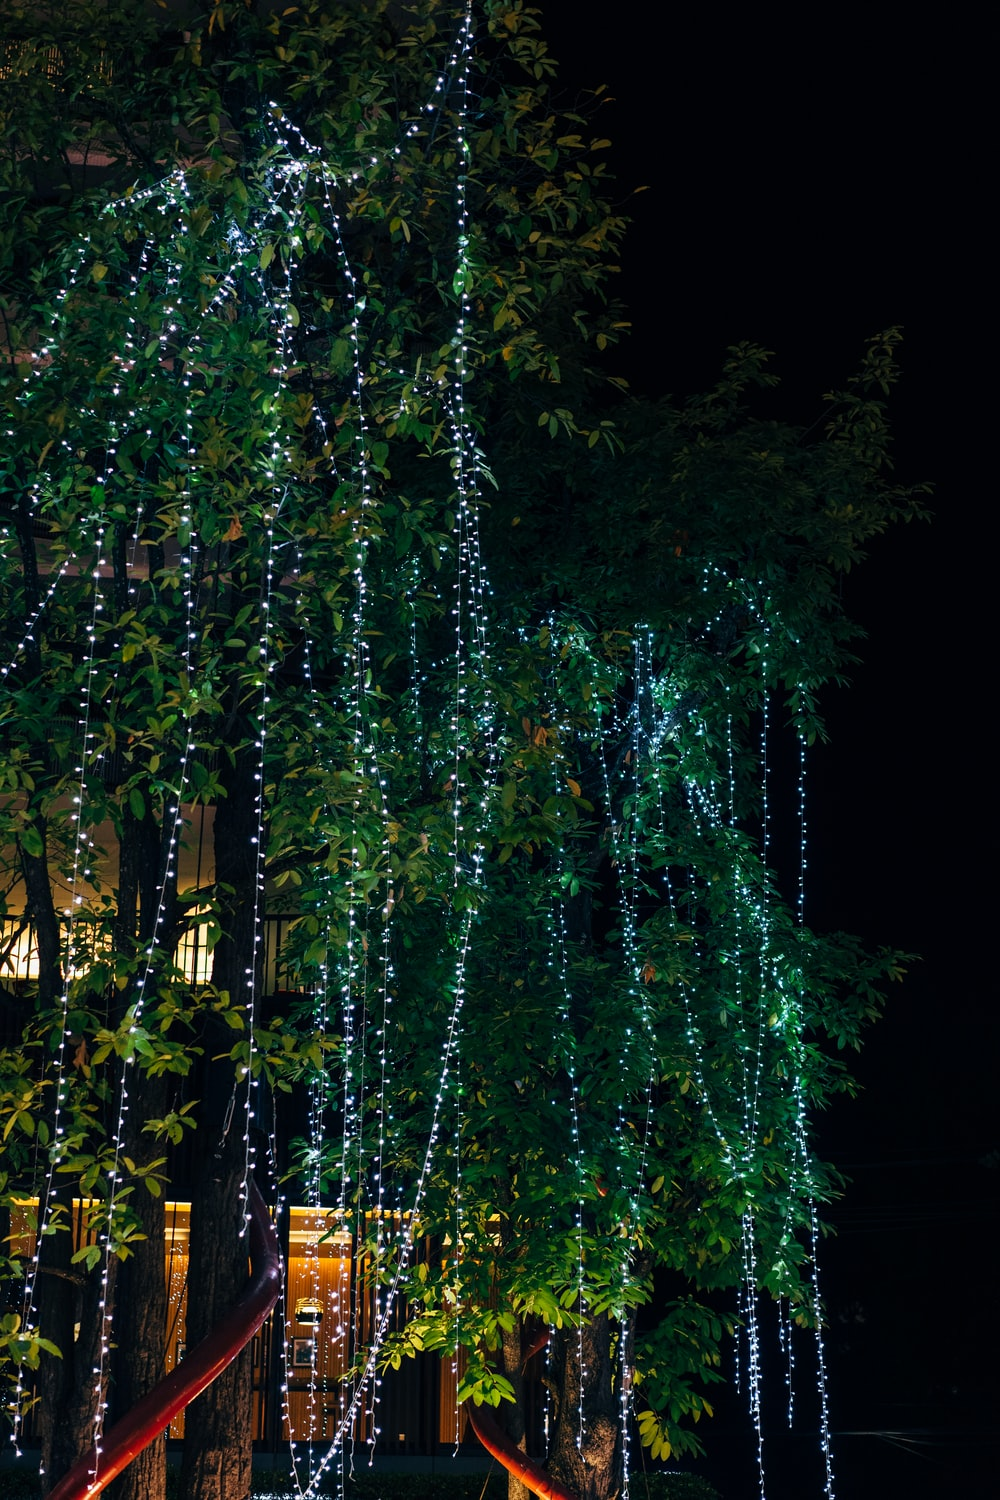 green trees with string lights during night time